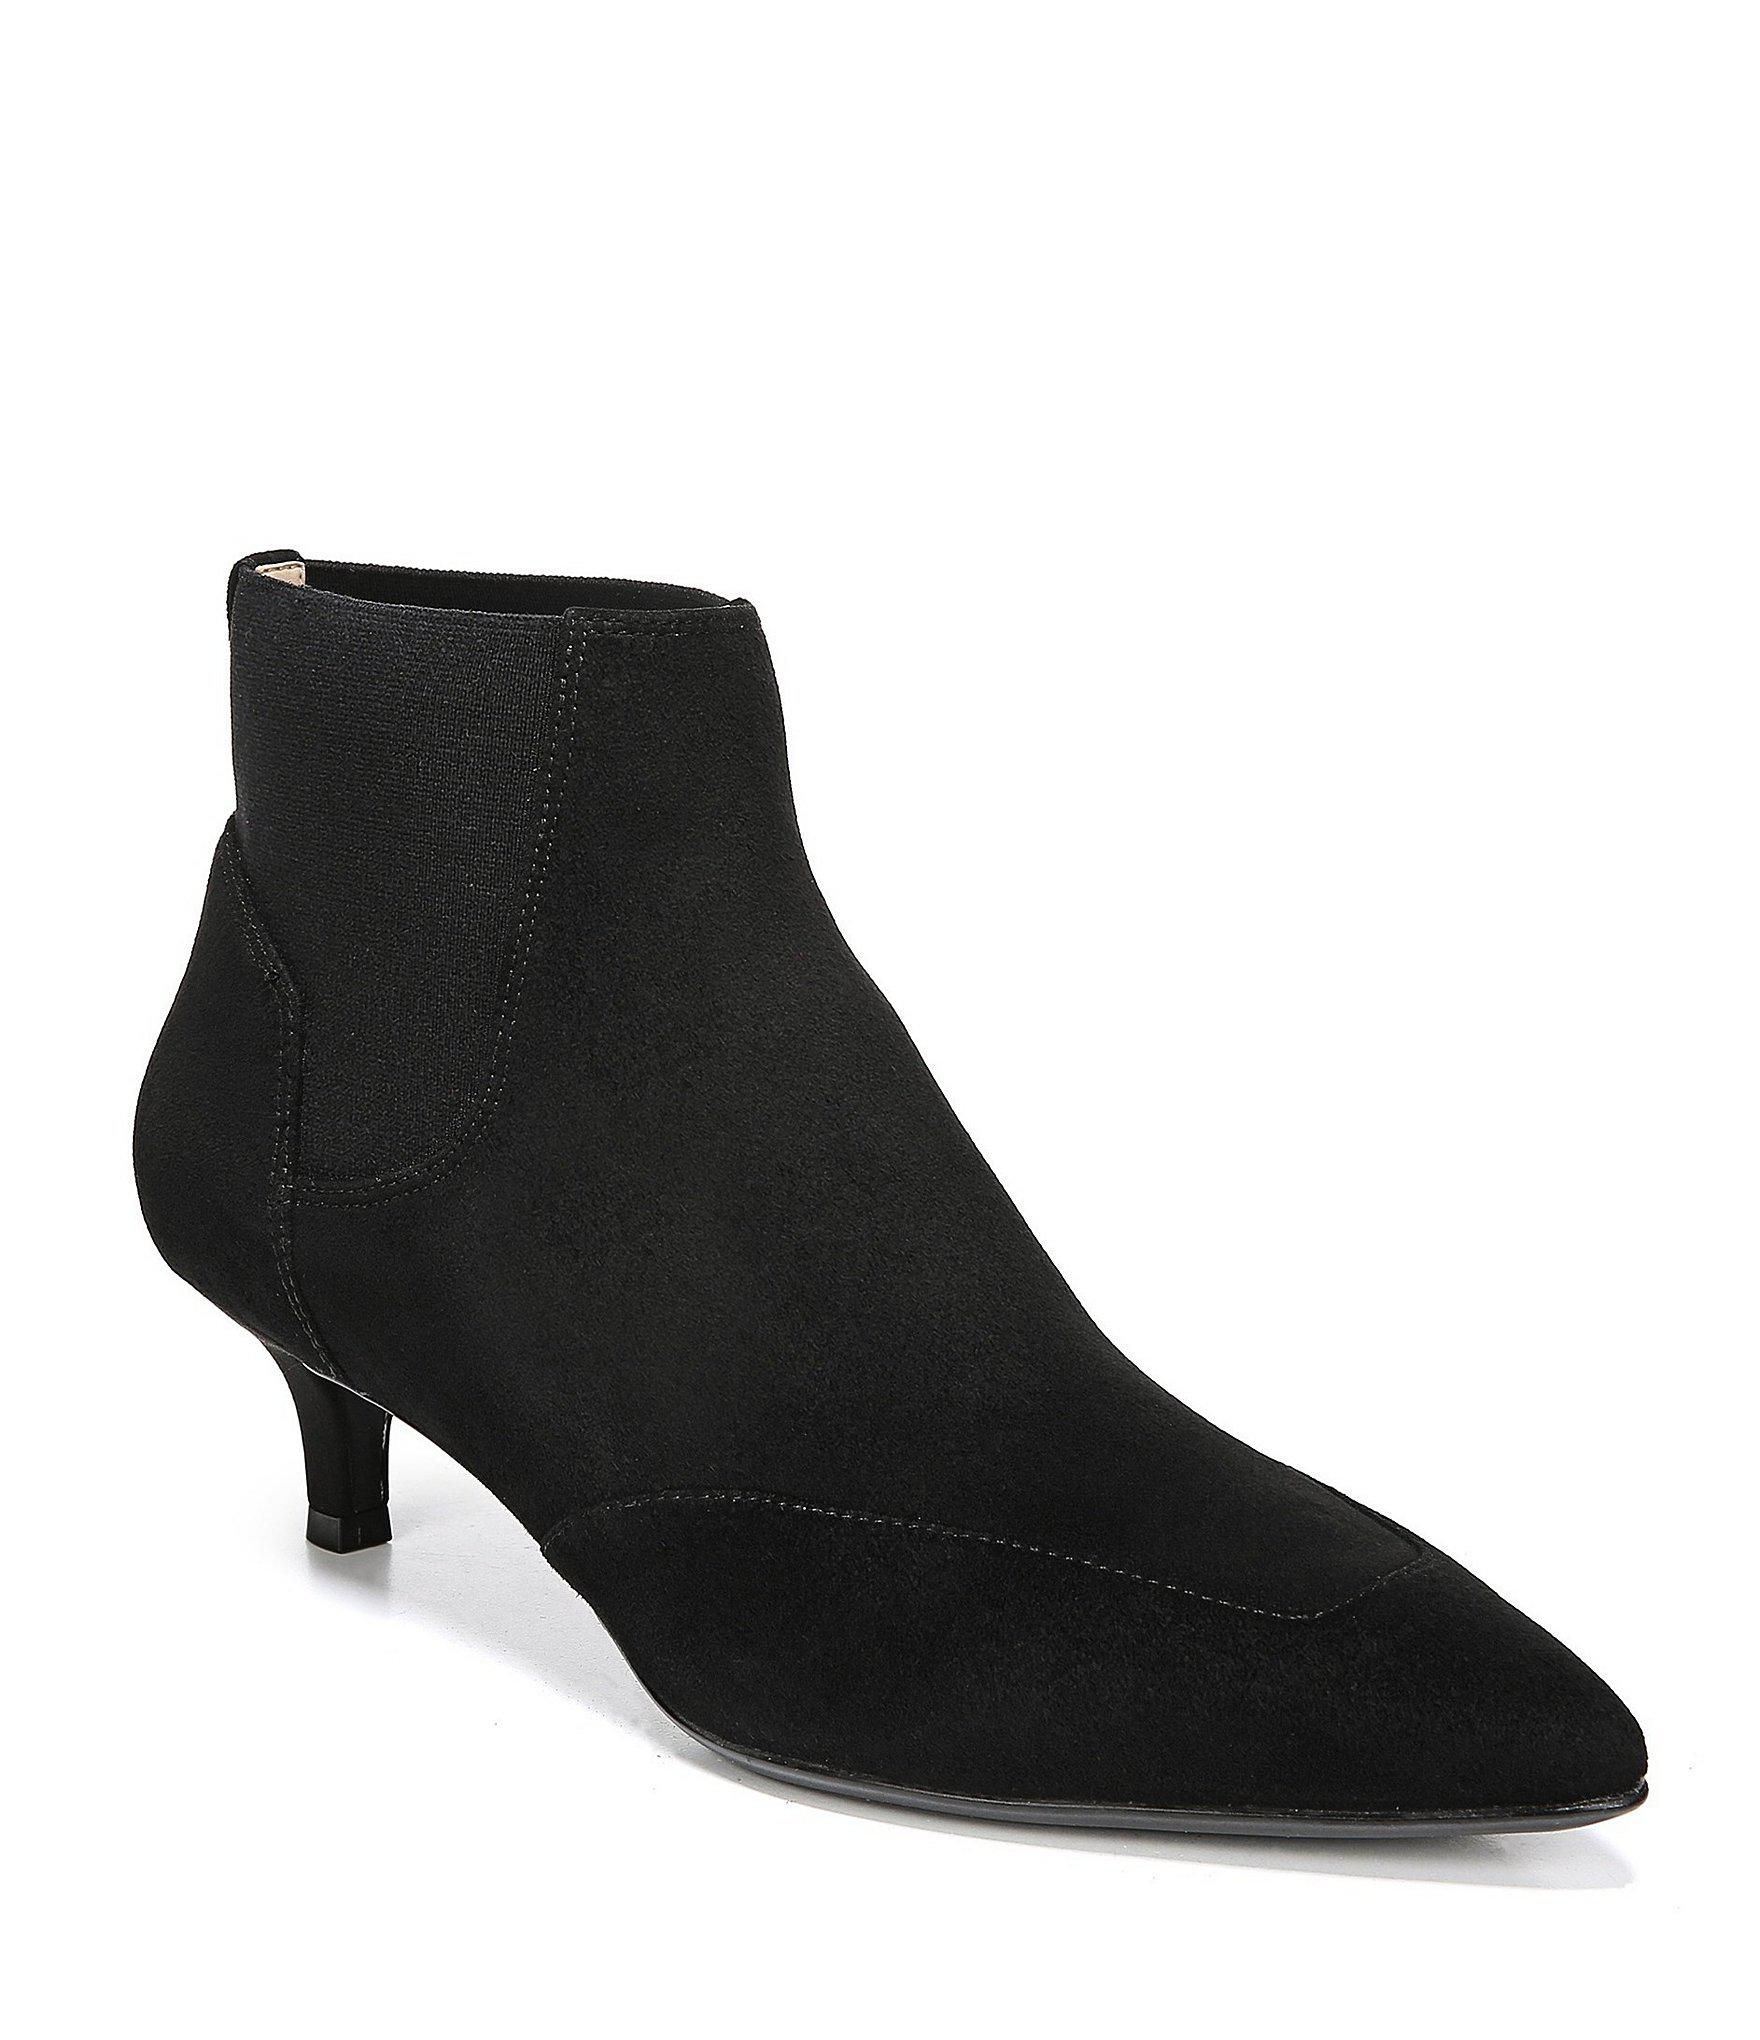 ba6a870baef Lyst Naturalizer Piper Suede Dress Booties In Black. Nine Seven Suede Womens  Flat Heel Round Toe Ankle ...